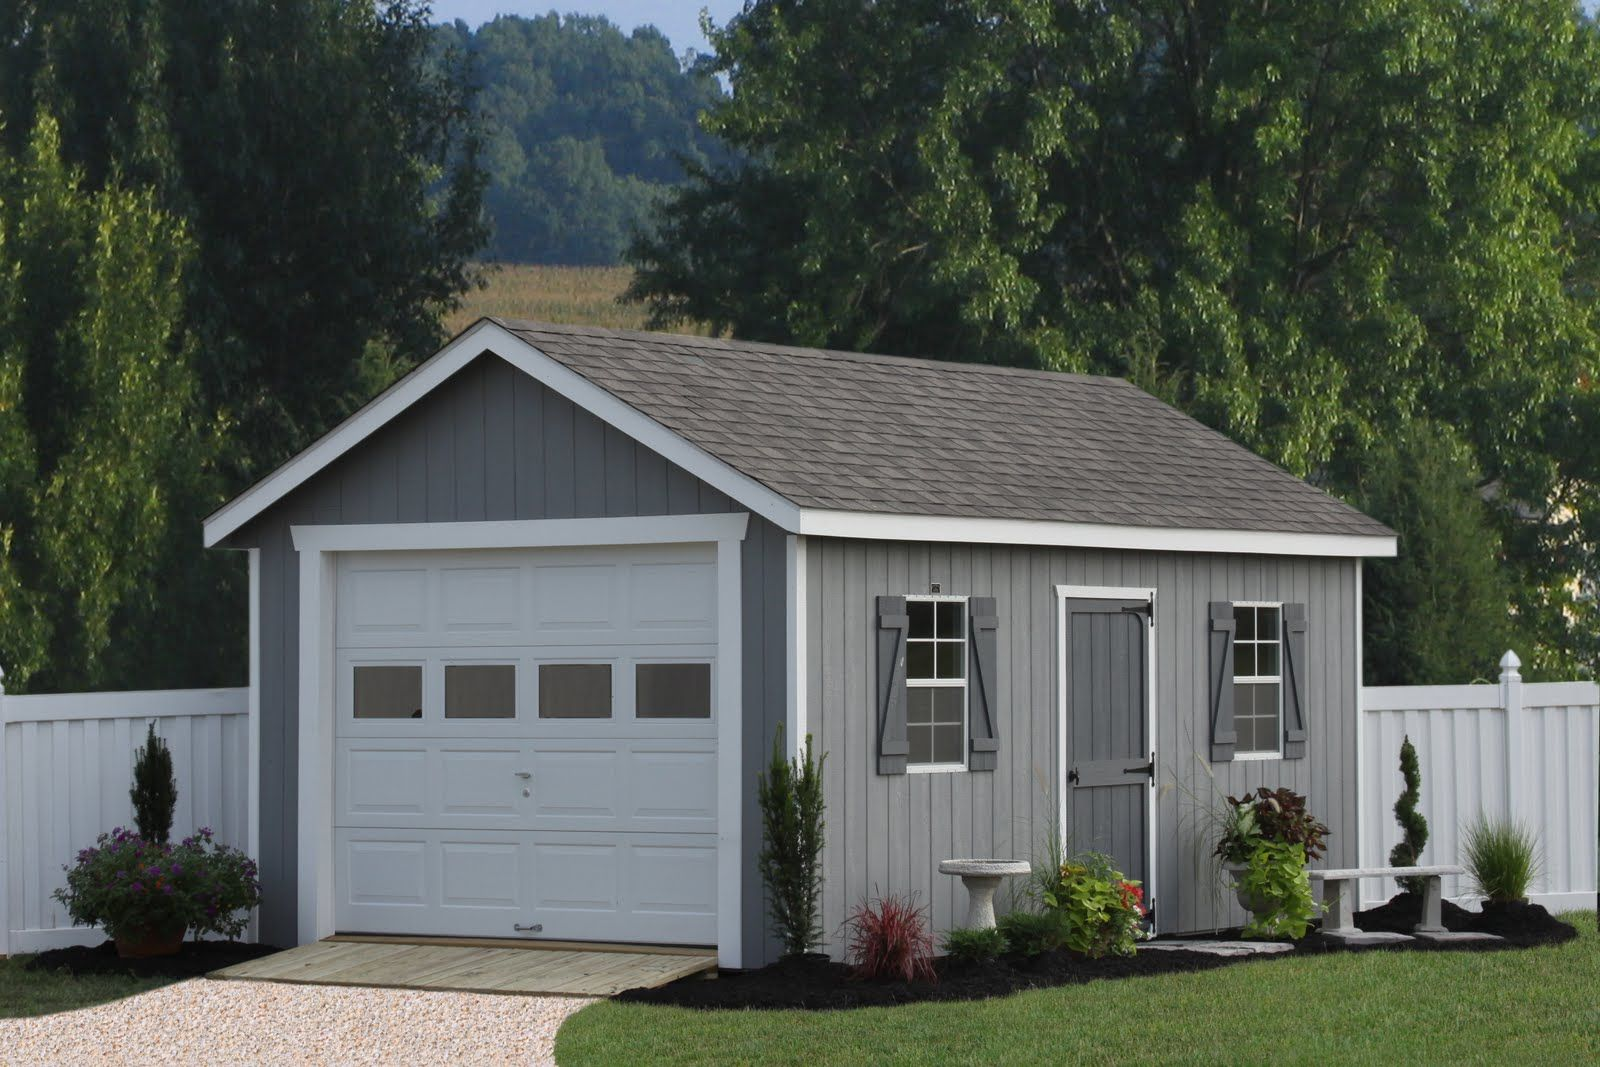 Add on garage plans 12x20 classic one car garage for How much is a one car garage